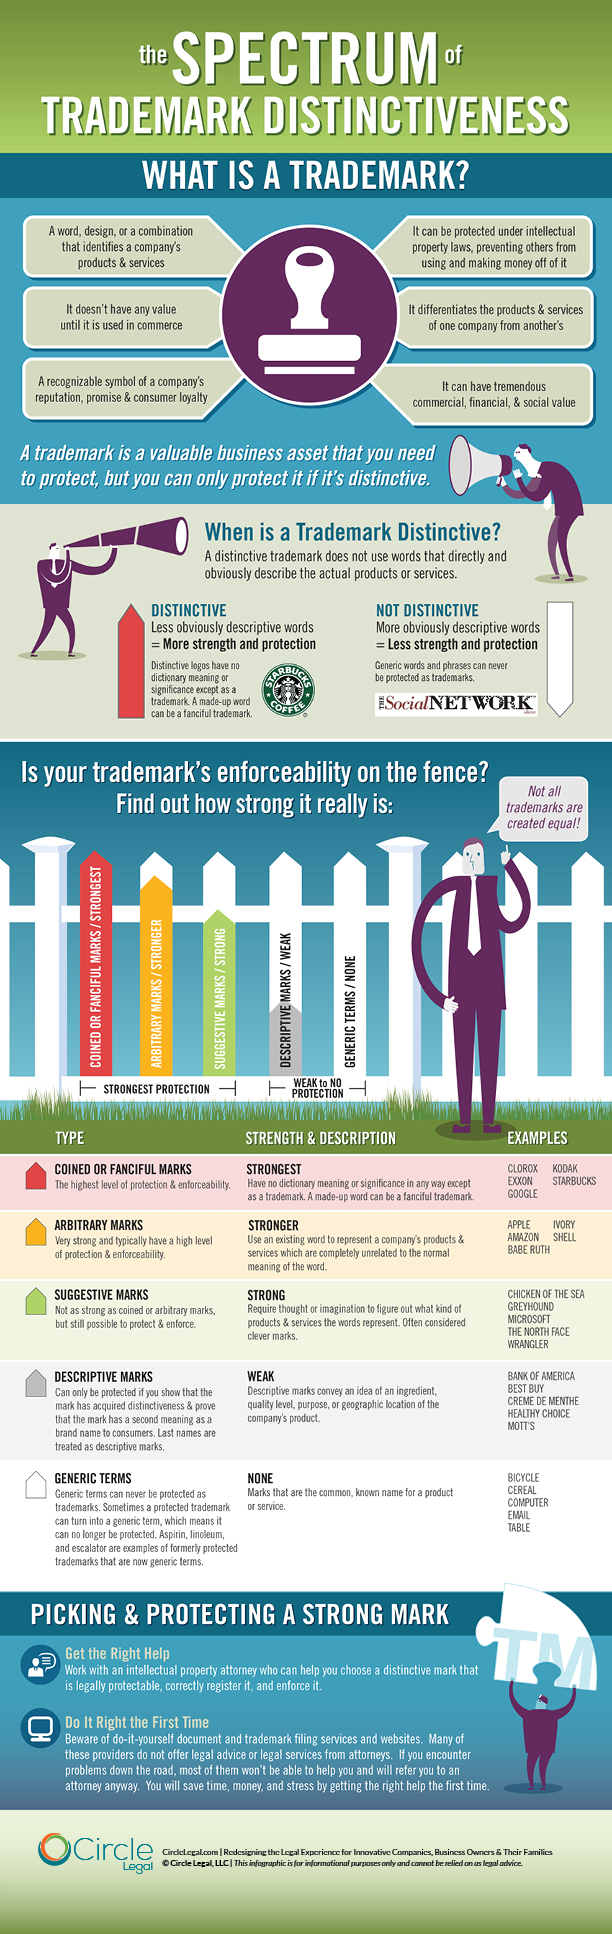 Trademark Infographic by Circle Legal